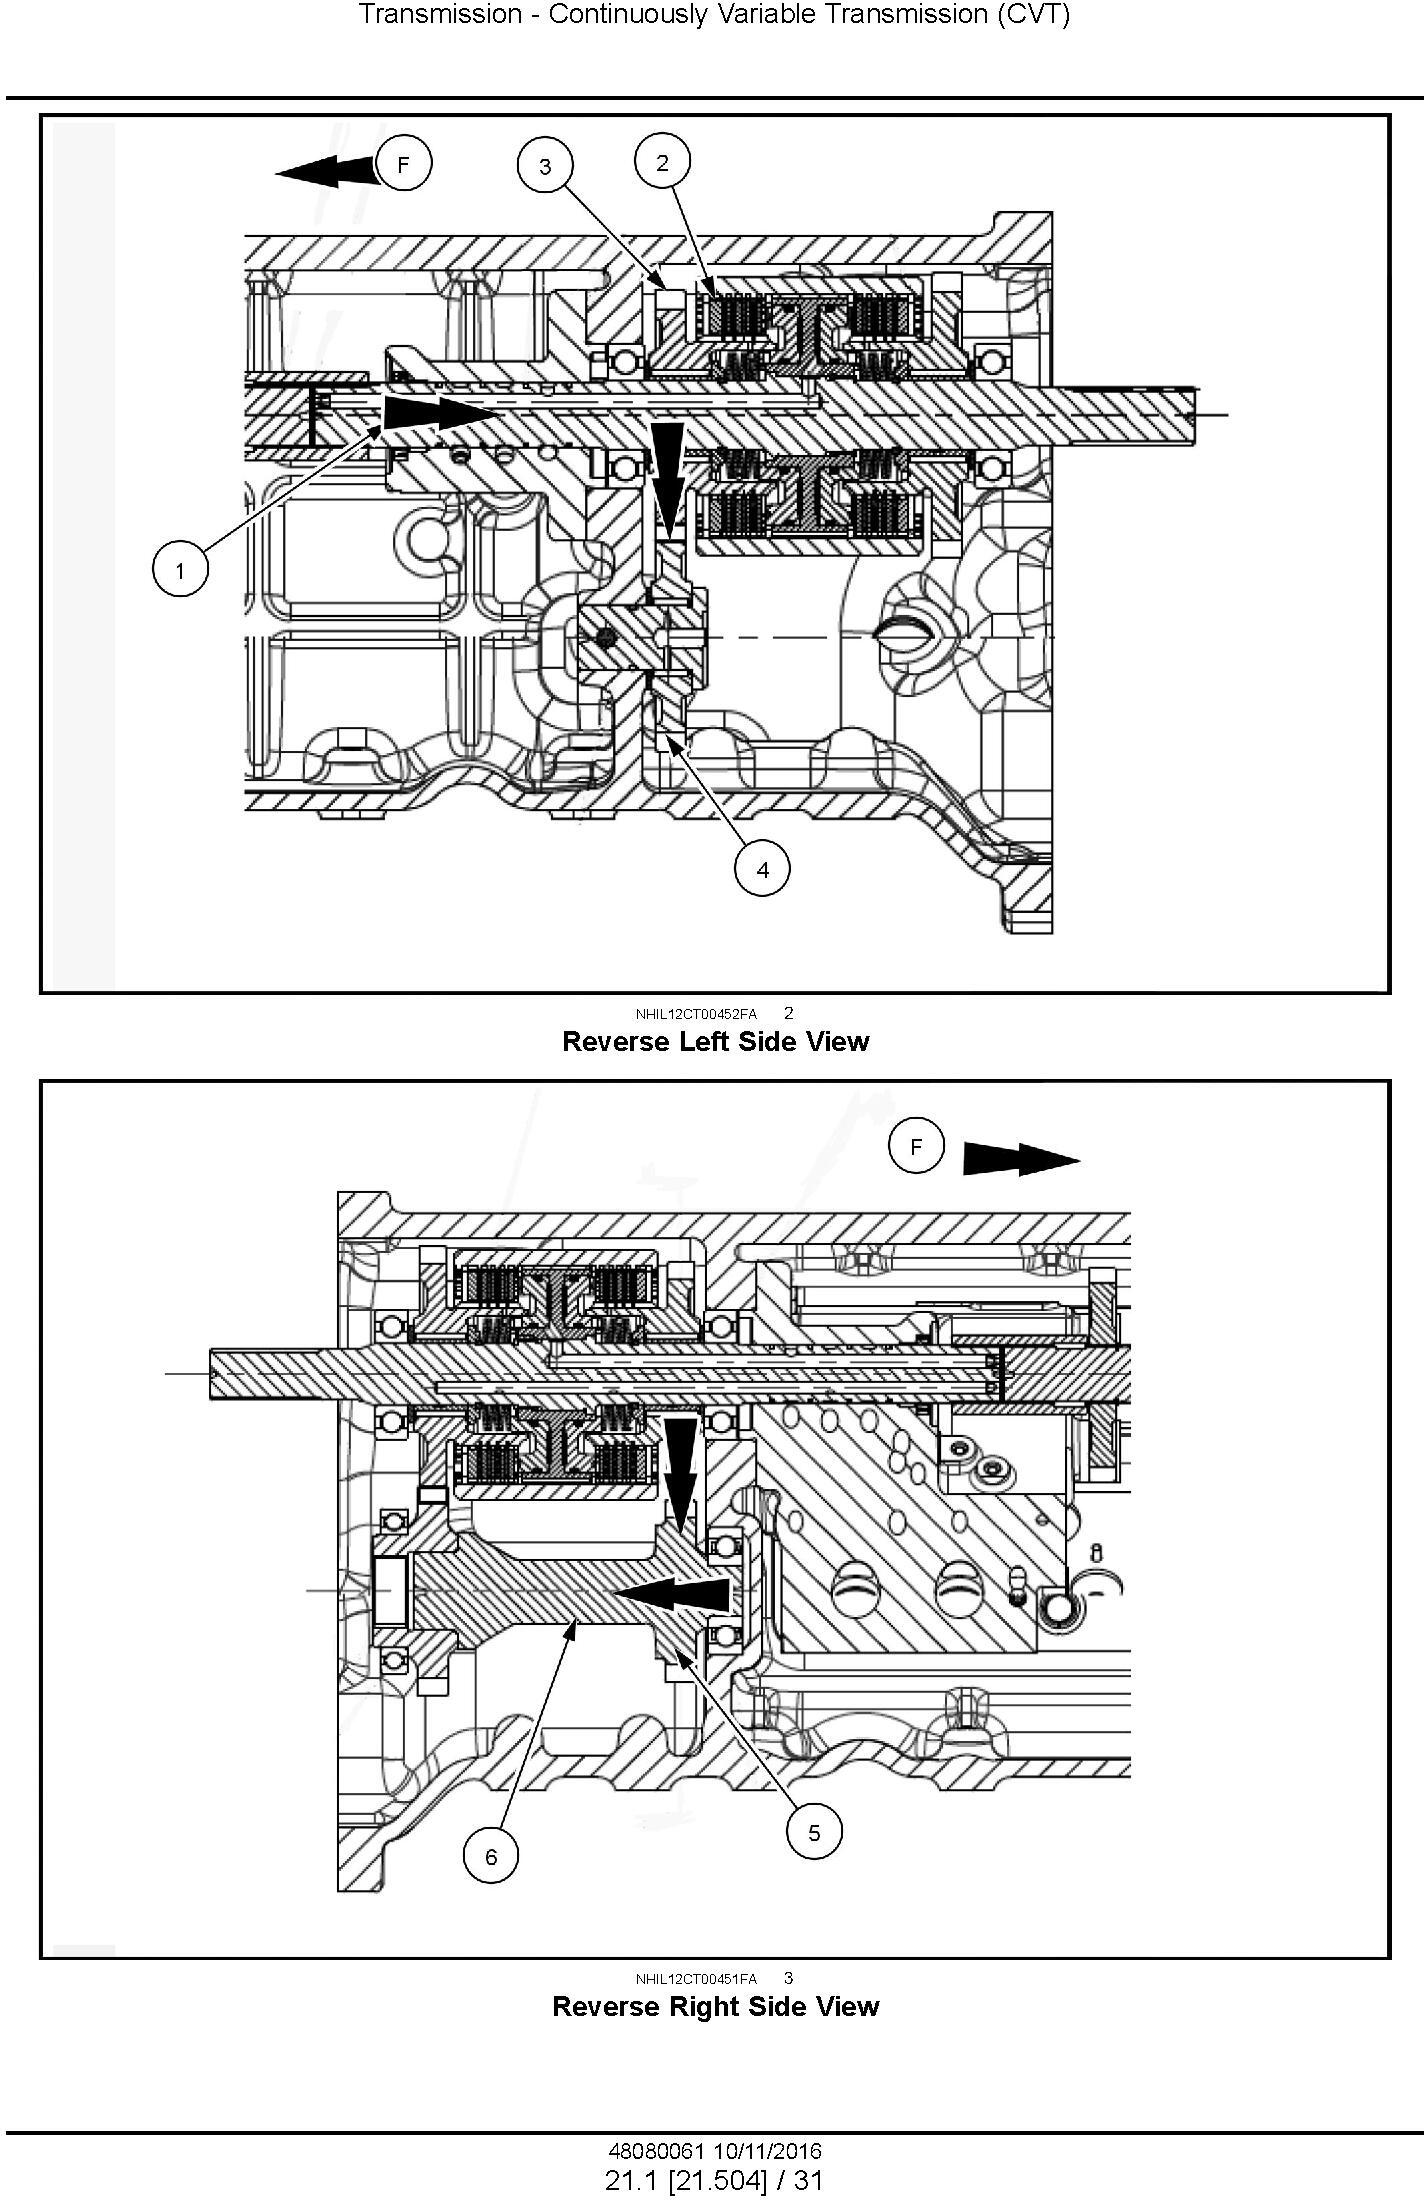 New Holland Boomer 3040 CVT,Boomer 3045 CVT, Boomer 3050 CVT Compact tractor Complete service manual - 2